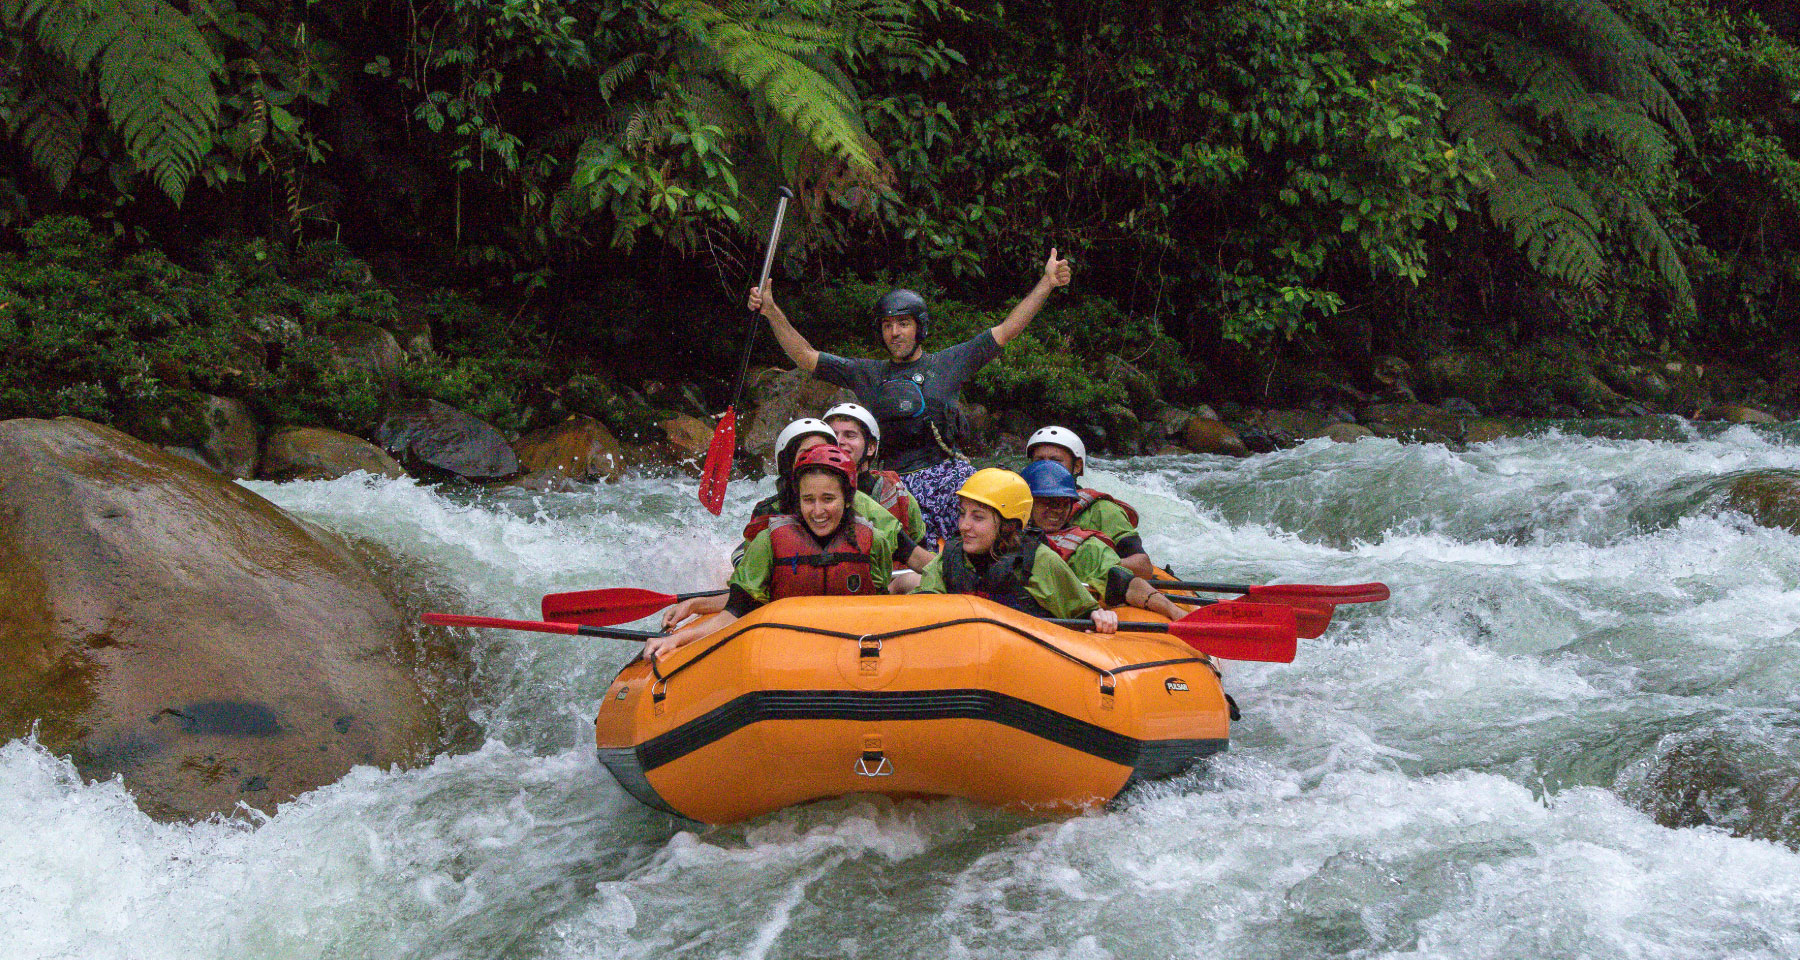 Descending rivers in raft boat in Ecuador